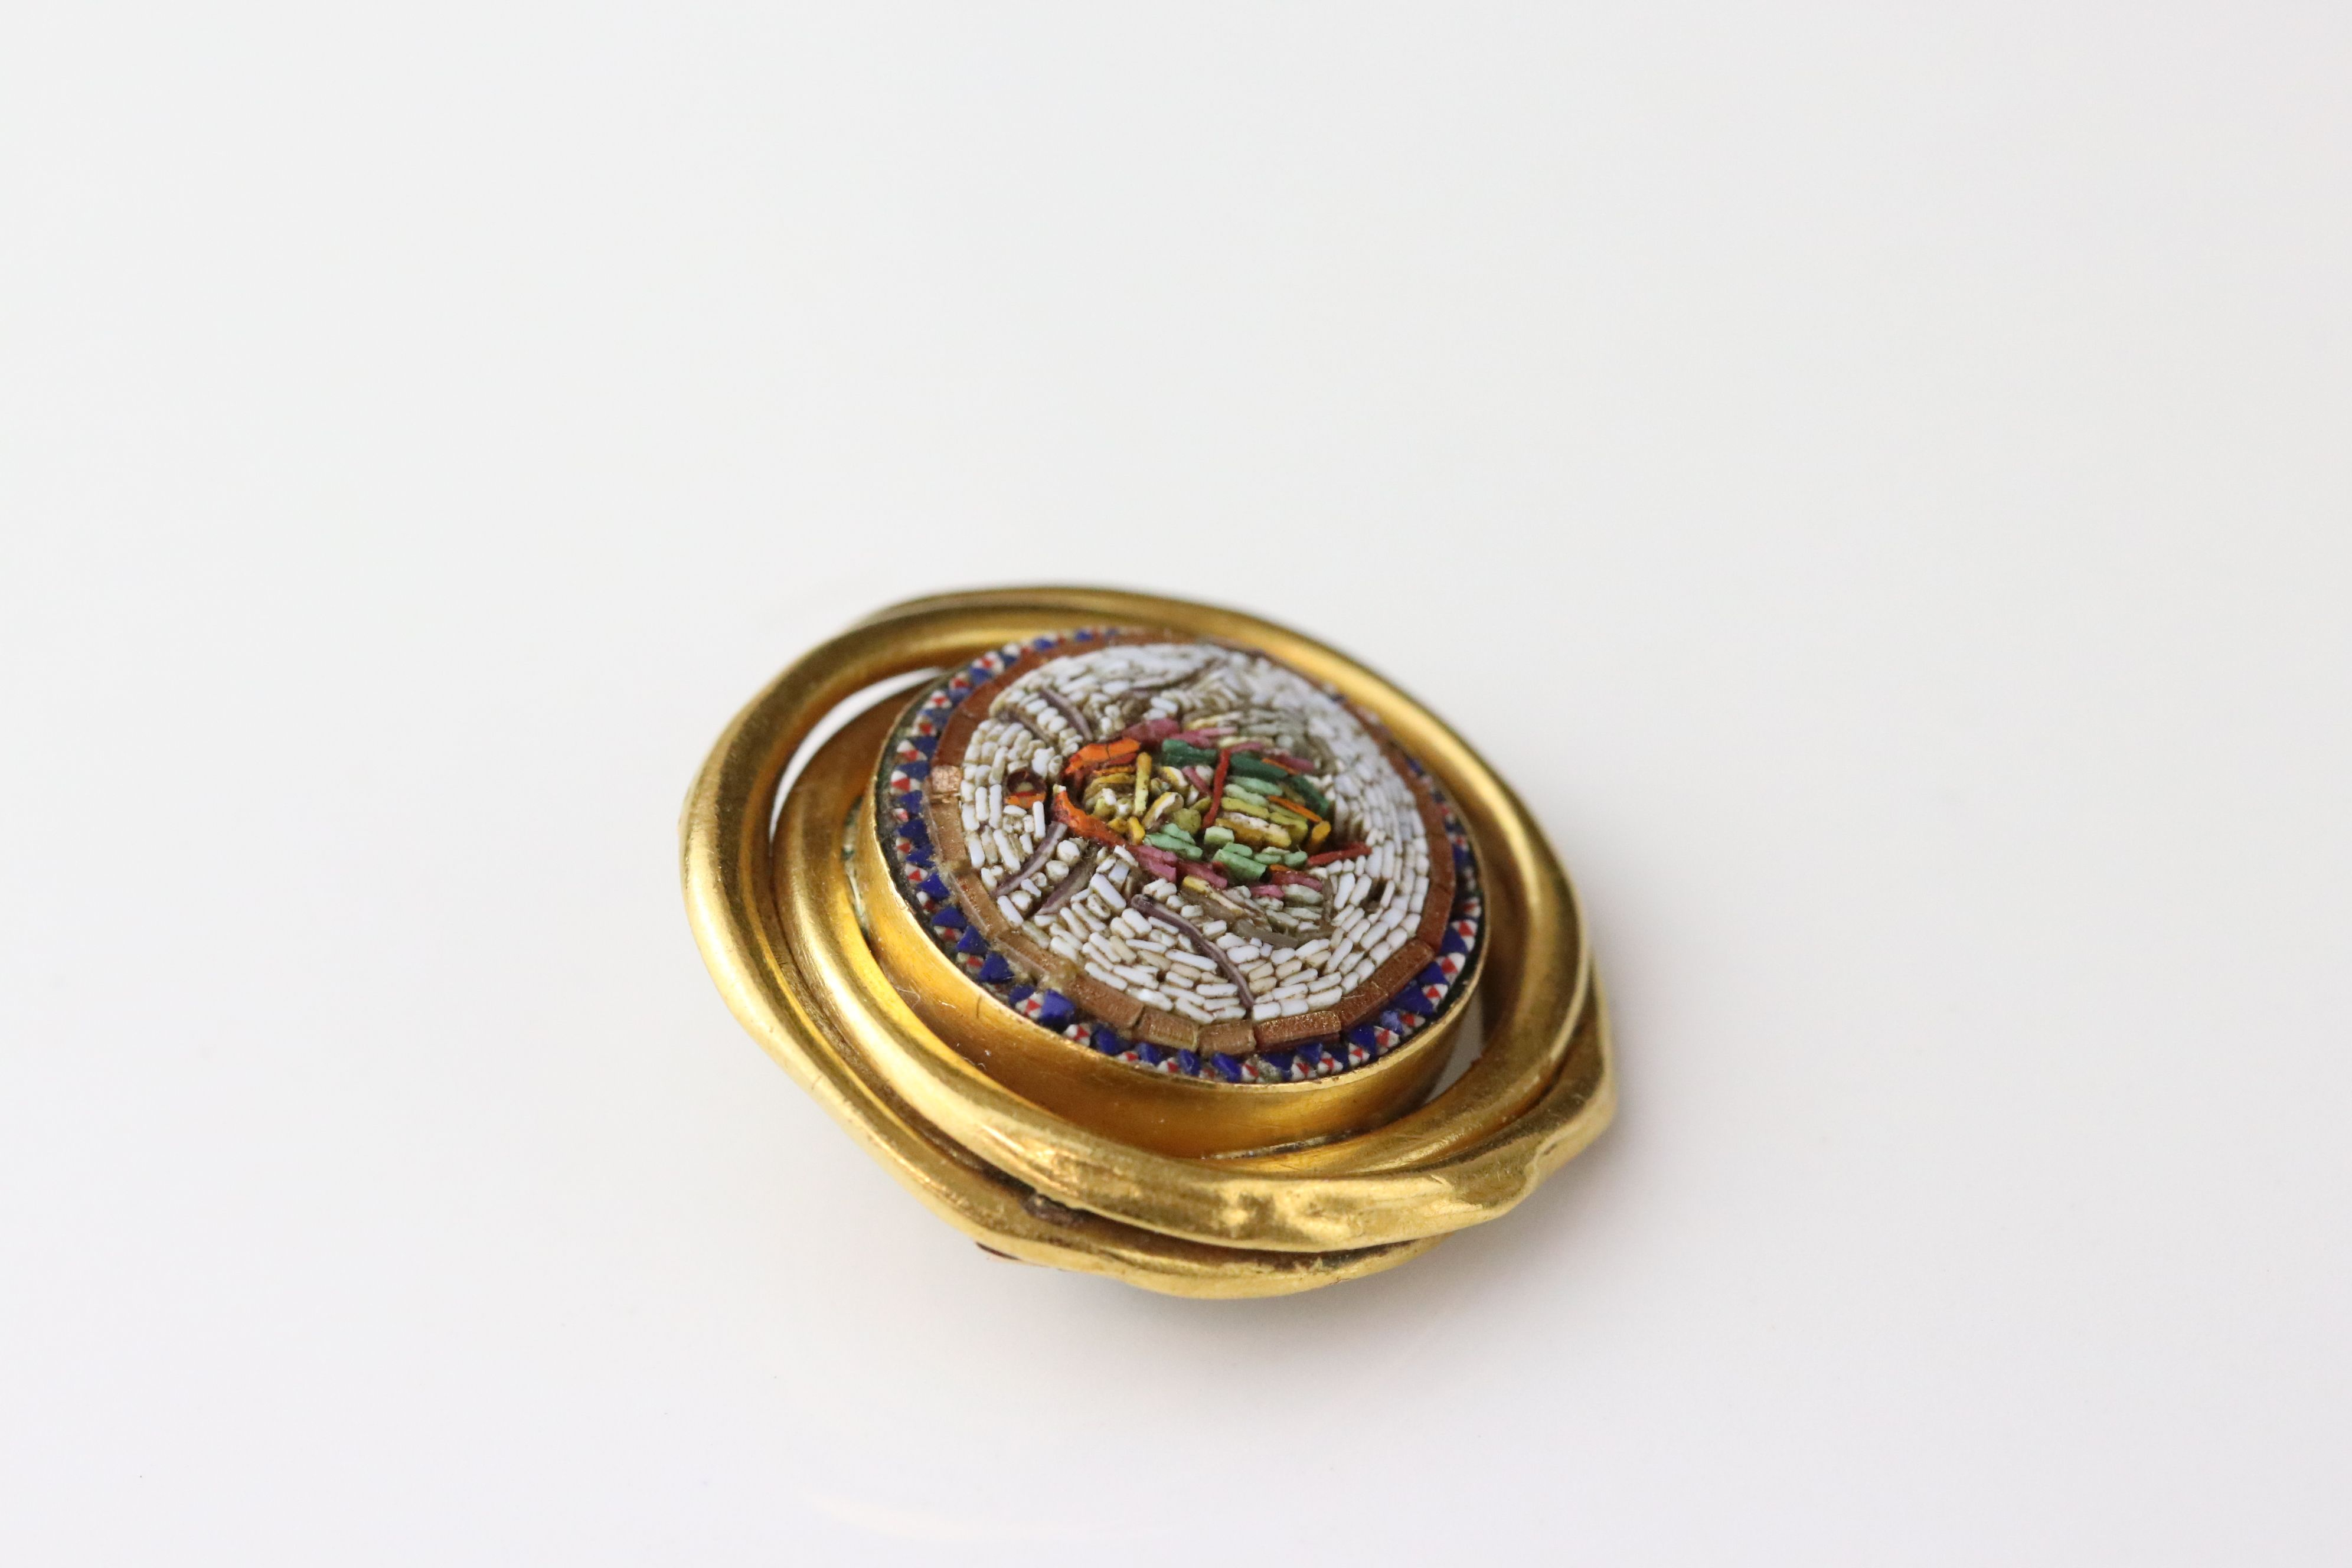 Victorian style micro-mosaic brooch depicting a fly, interwoven yellow metal surround, hinged pin - Image 2 of 4